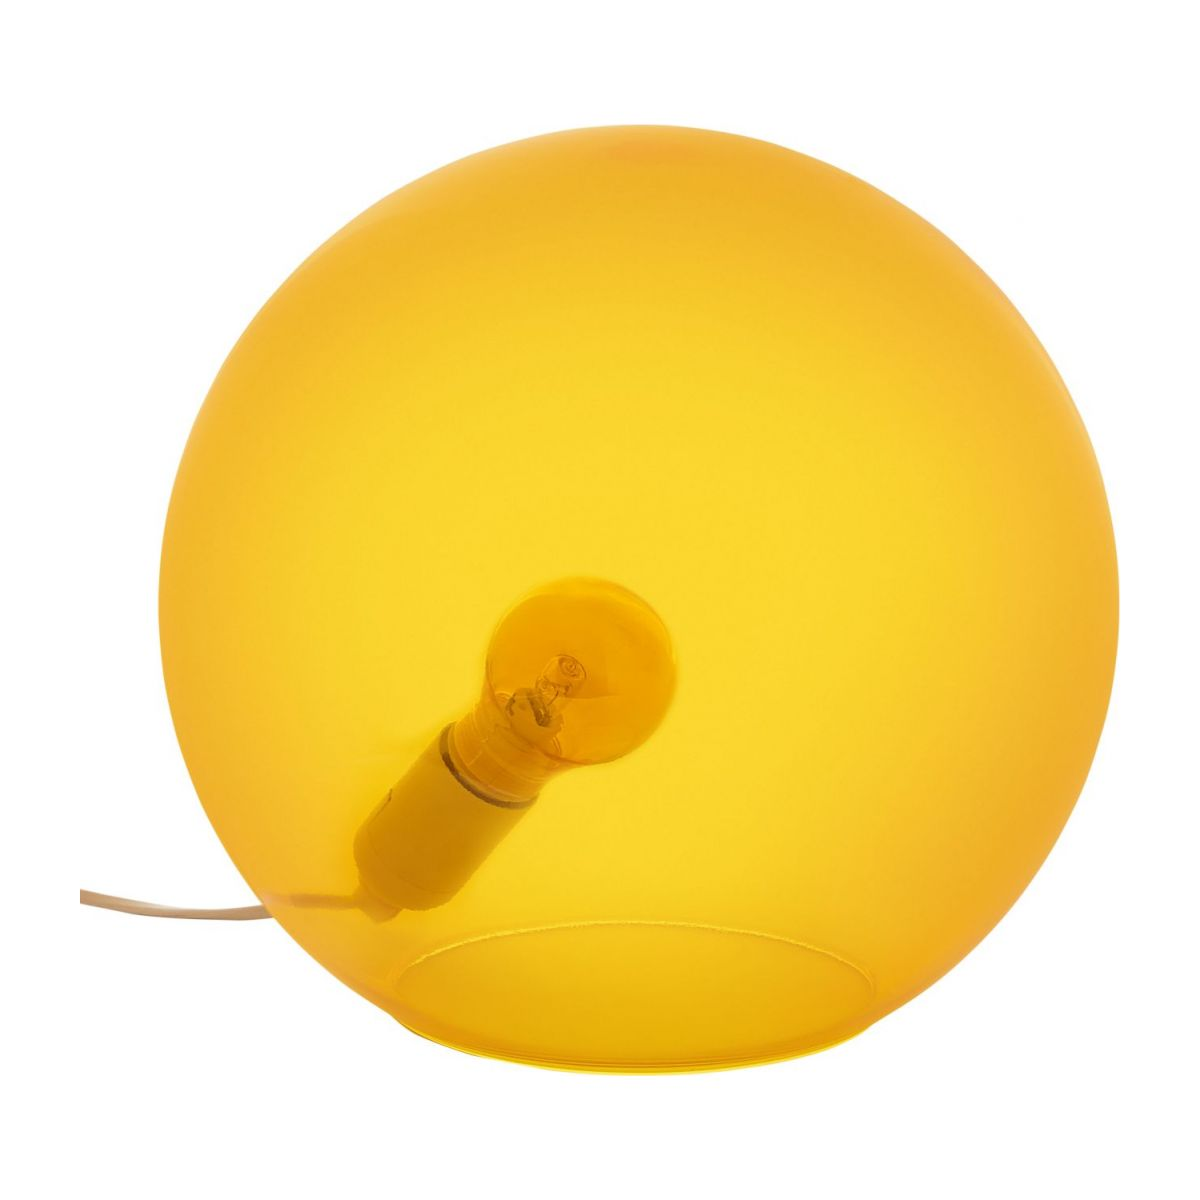 Lamp made of glass 30cm, yellow n°1